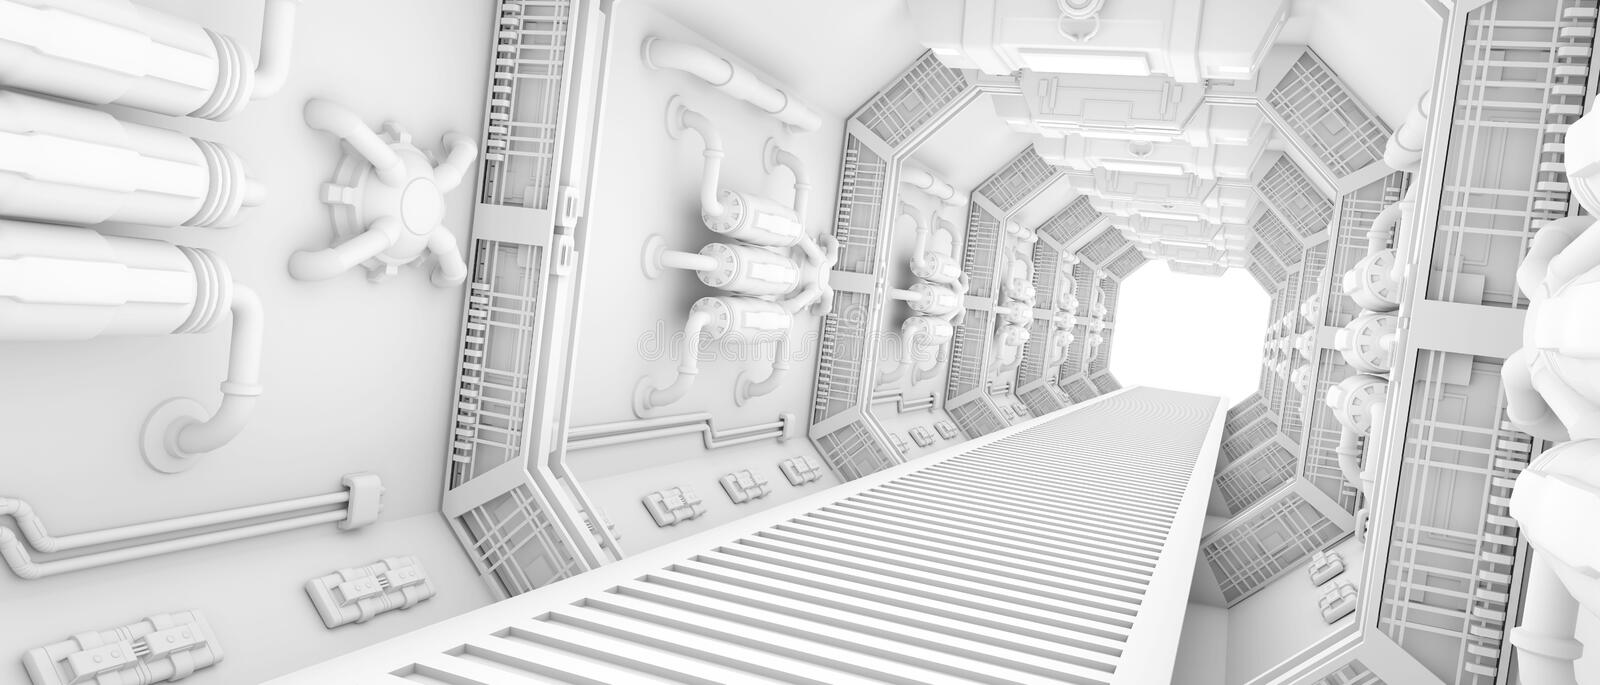 Interior of a spaceship royalty free illustration